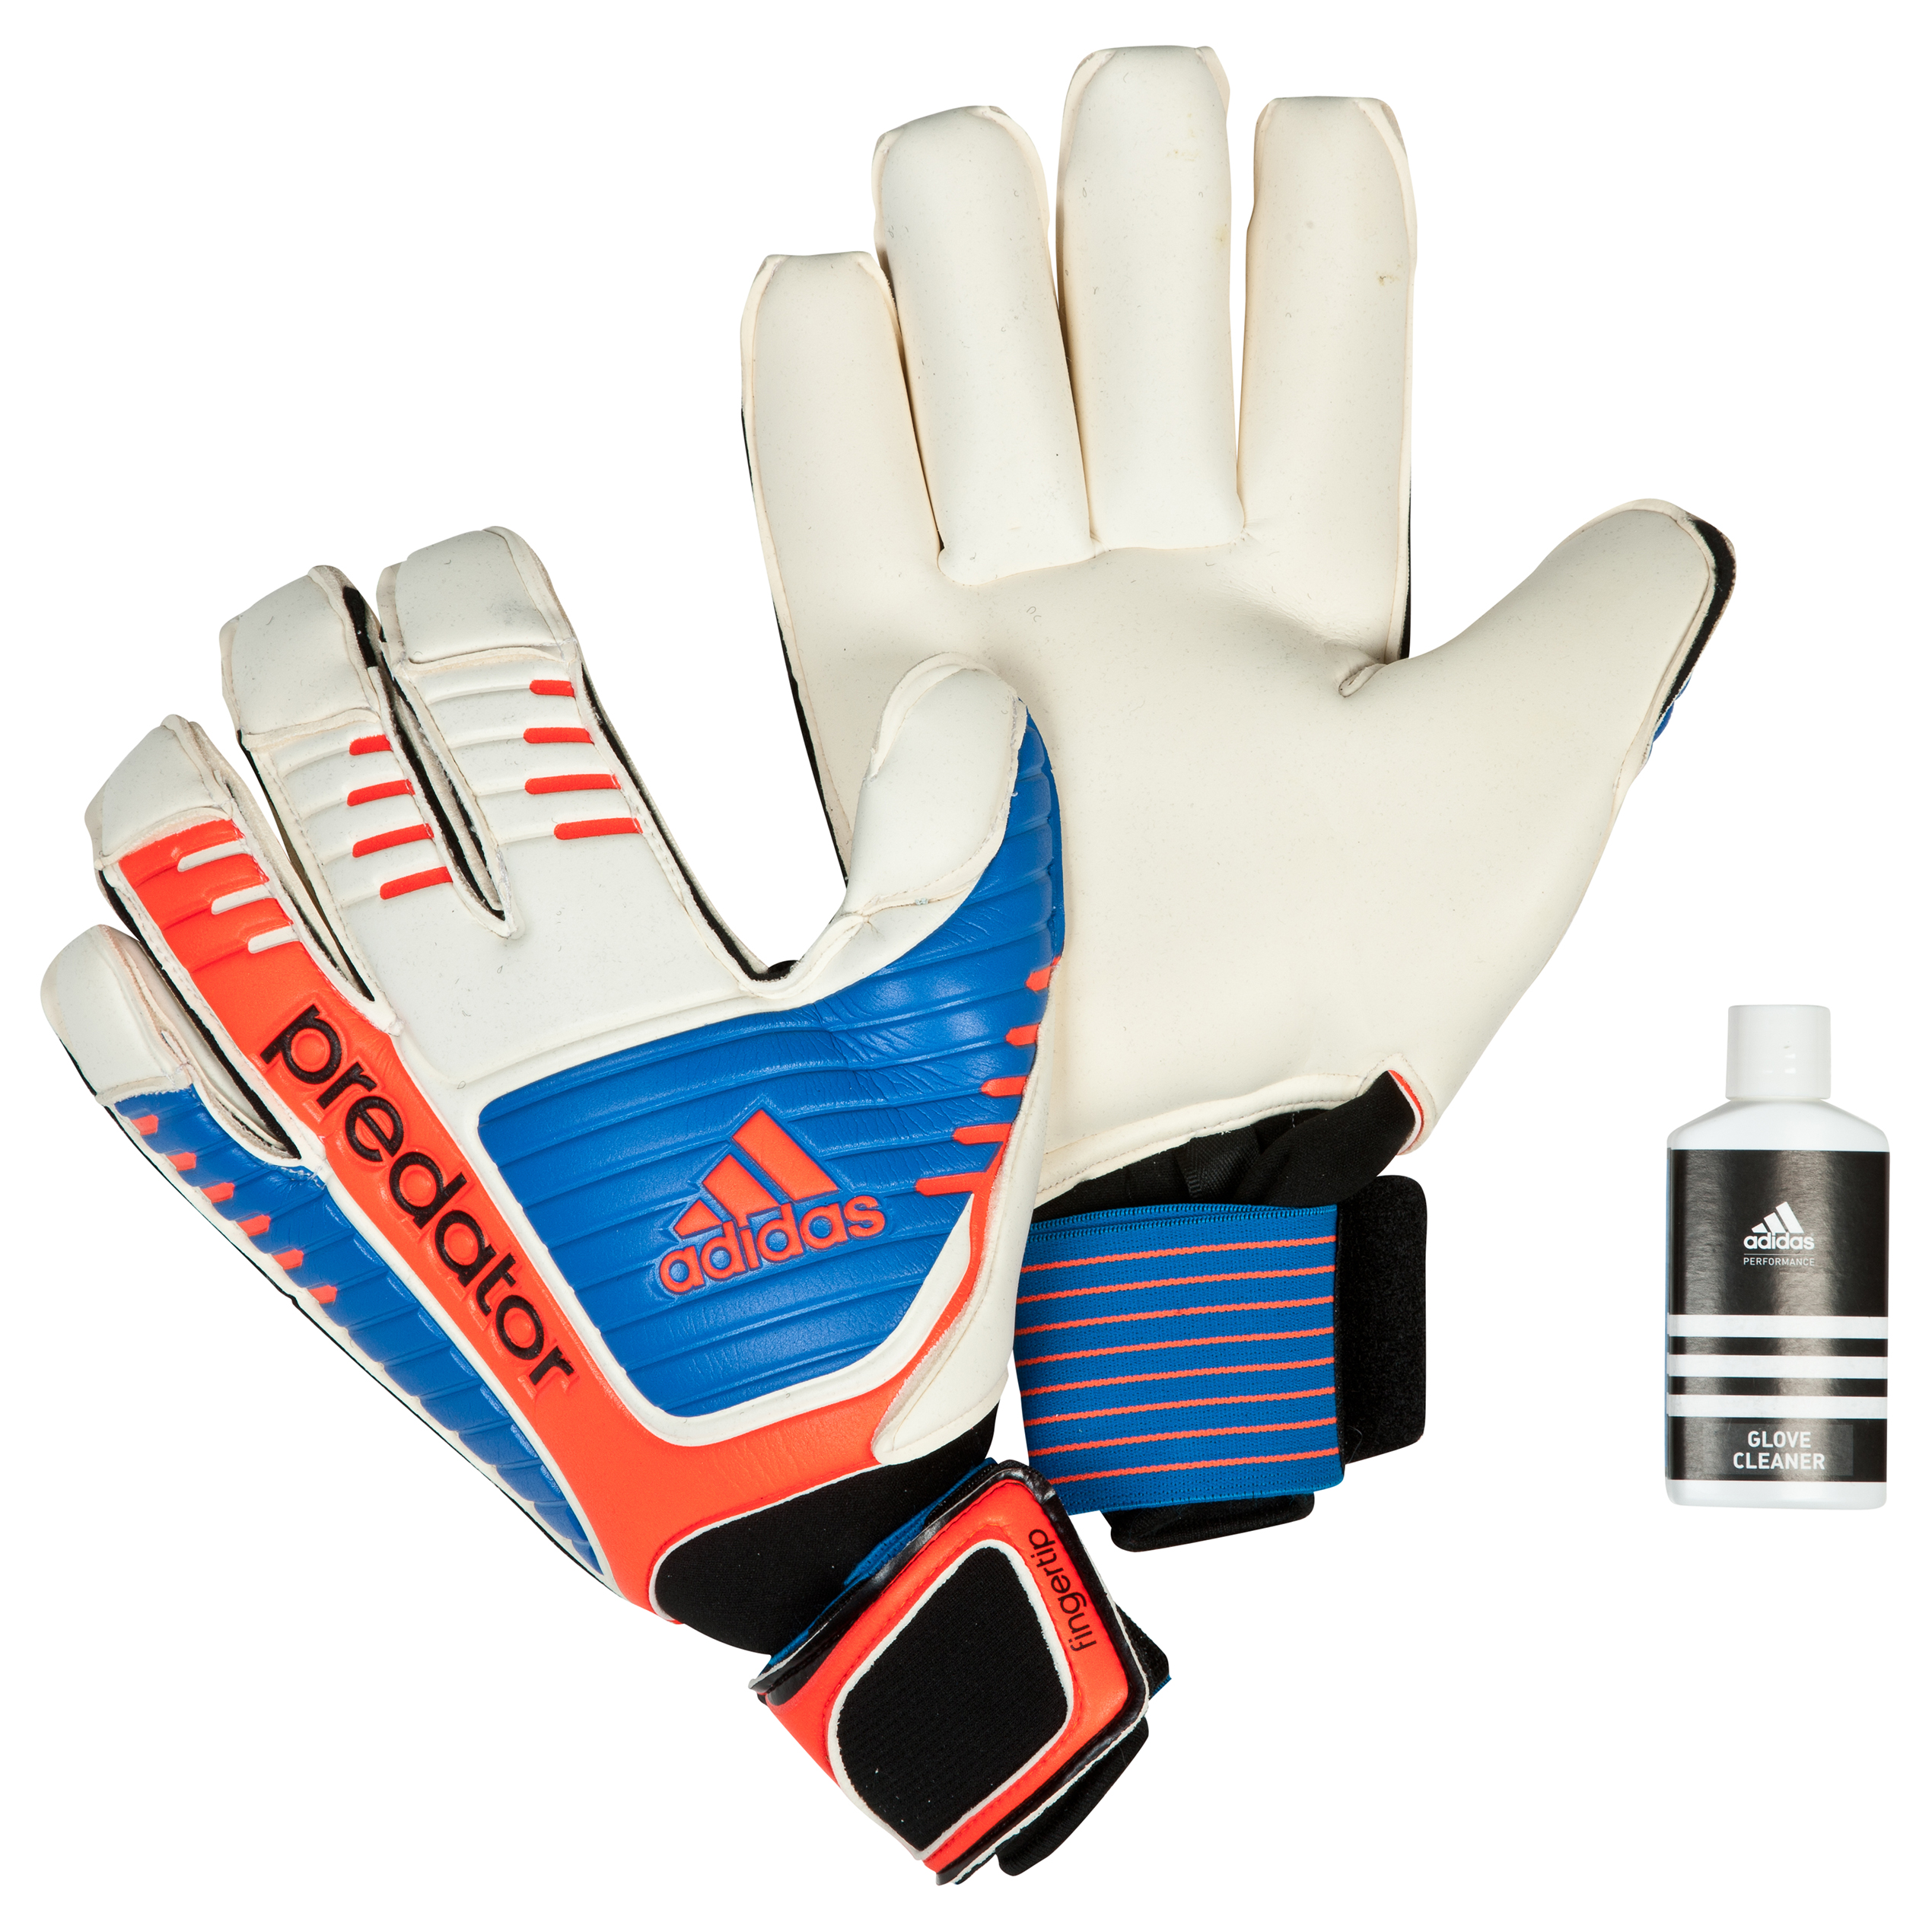 Adidas Predator Fingertip Goalkeeper Gloves - White/Bright Blue/Infrared